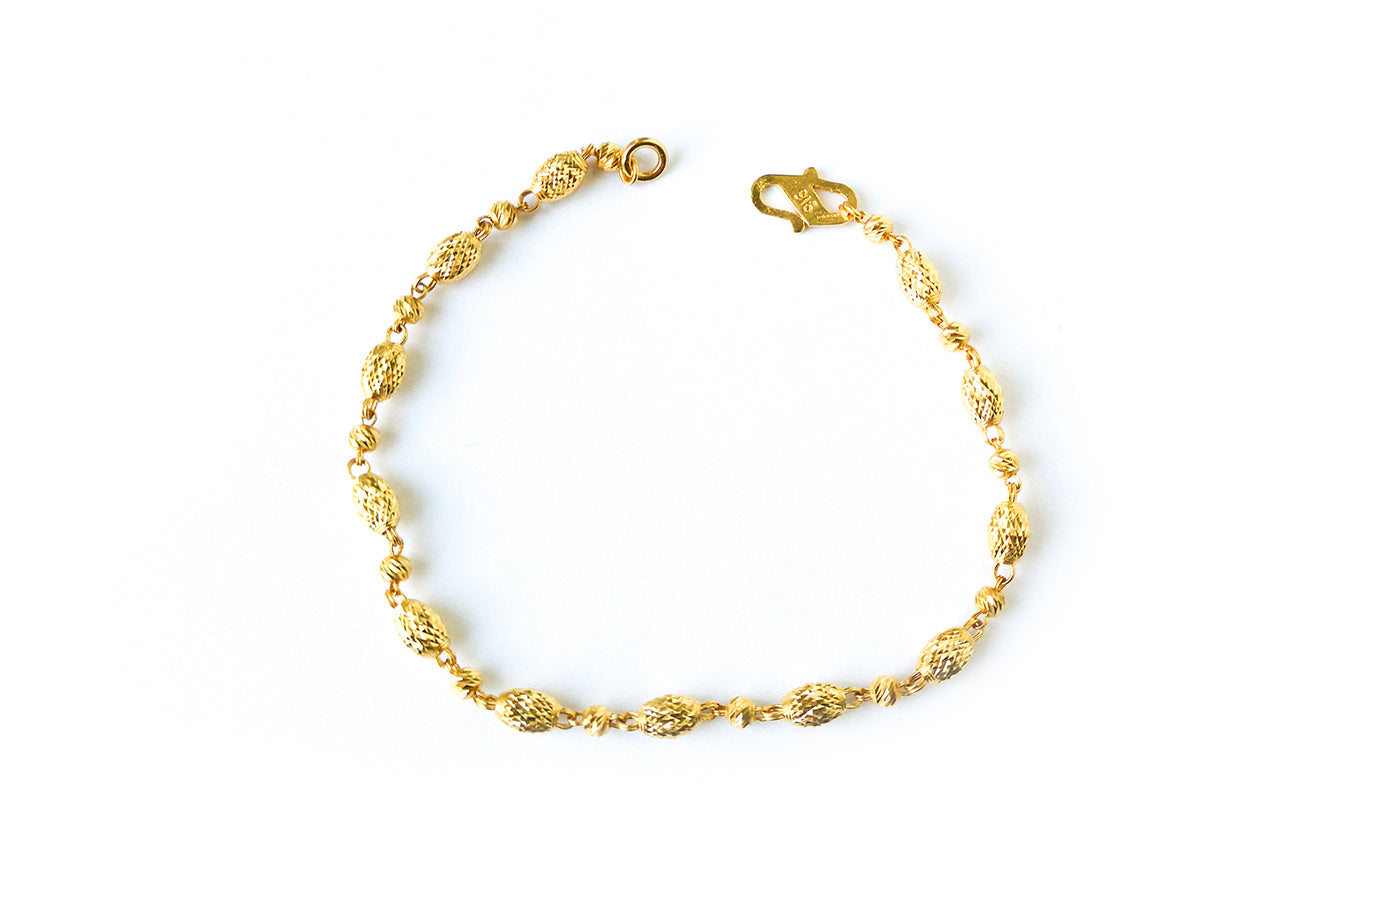 22ct Gold Bracelet with Diamond Cut Design and S Clasp (4.7g) LBR-7608